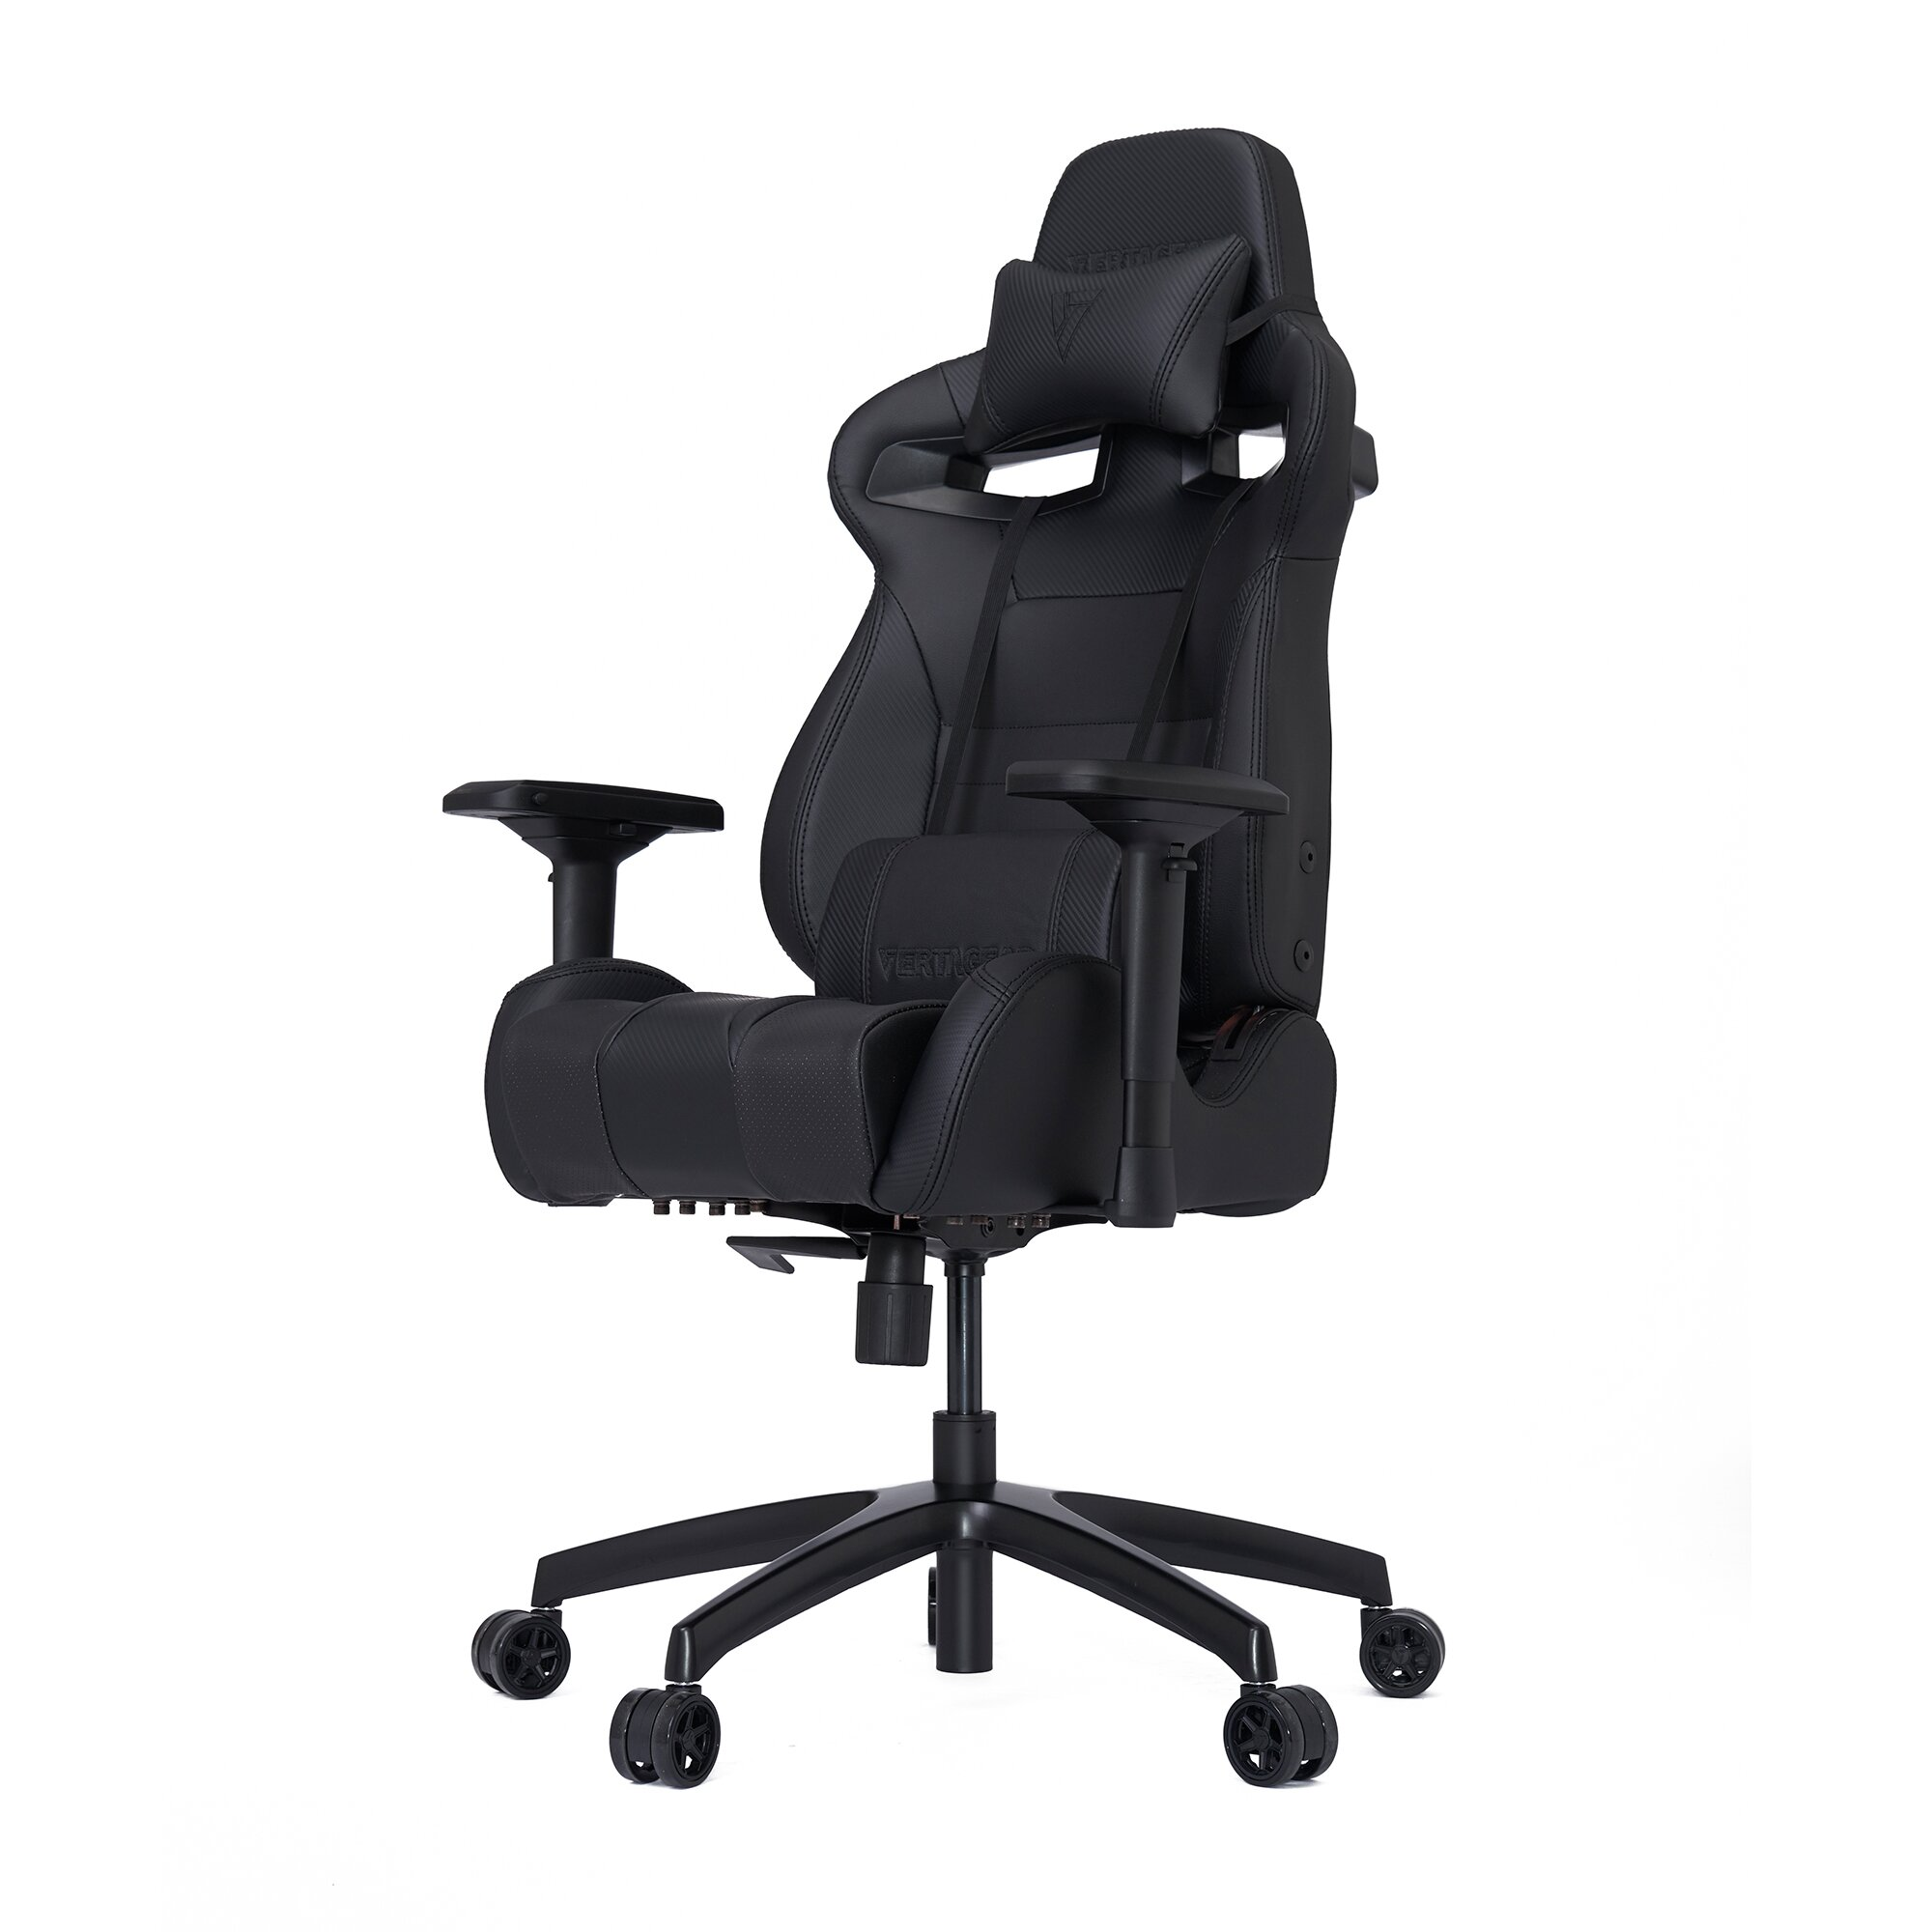 Black and white office chair - Vertagear High Back Gaming Office Chair With Arms